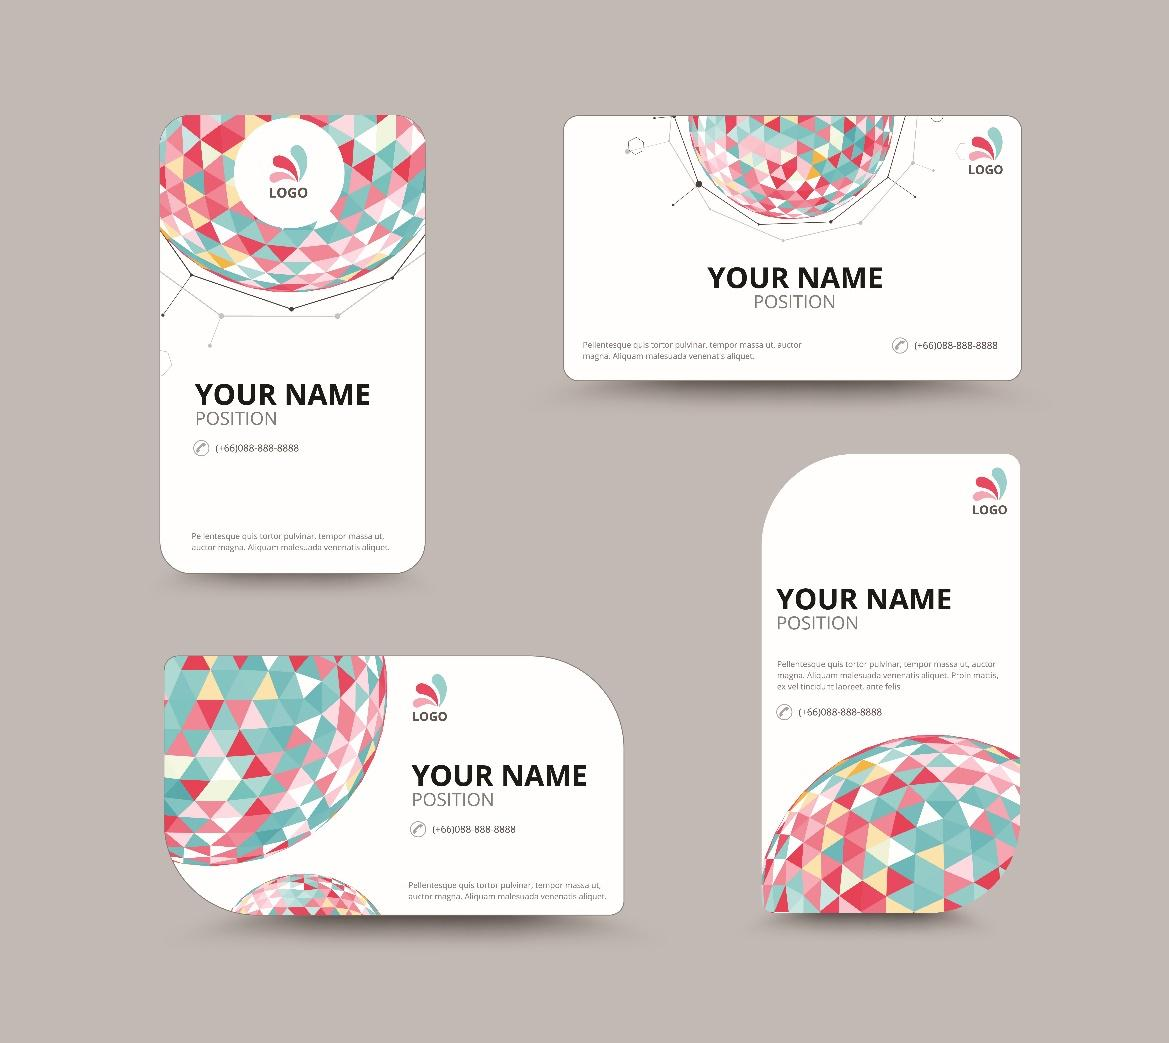 Tips when designing your business card the freelancer club make your business card easy to read and keep your brand crisp and clean you need your contact details to stand out so customers can find what they colourmoves